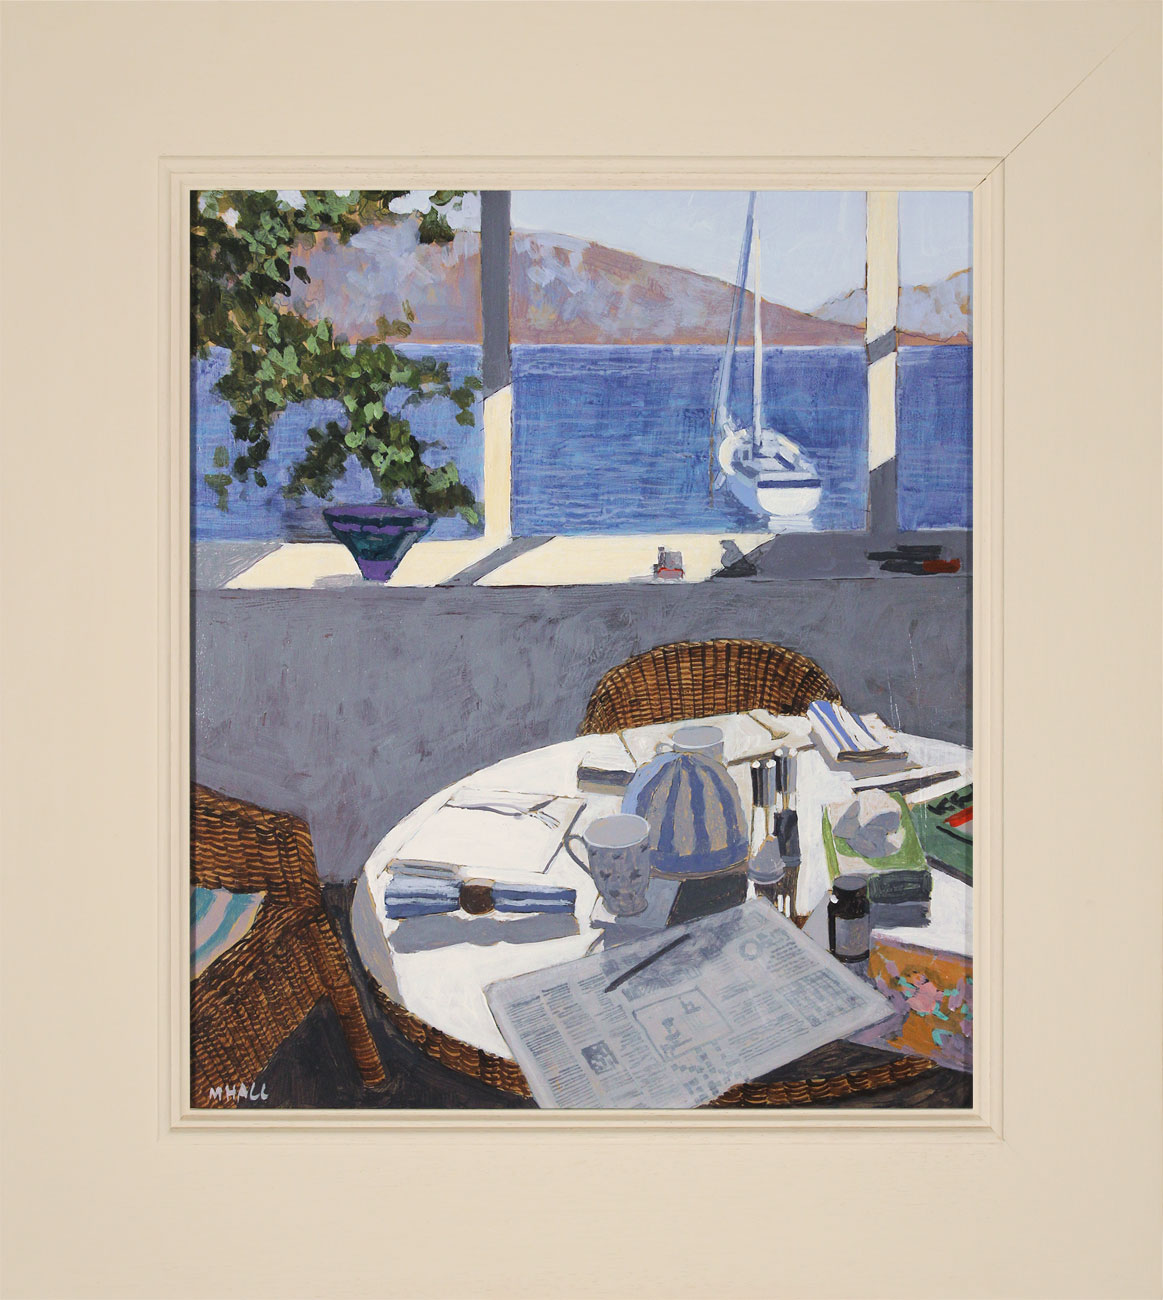 Mike Hall, Original acrylic painting on board, Deserted Table III, click to enlarge